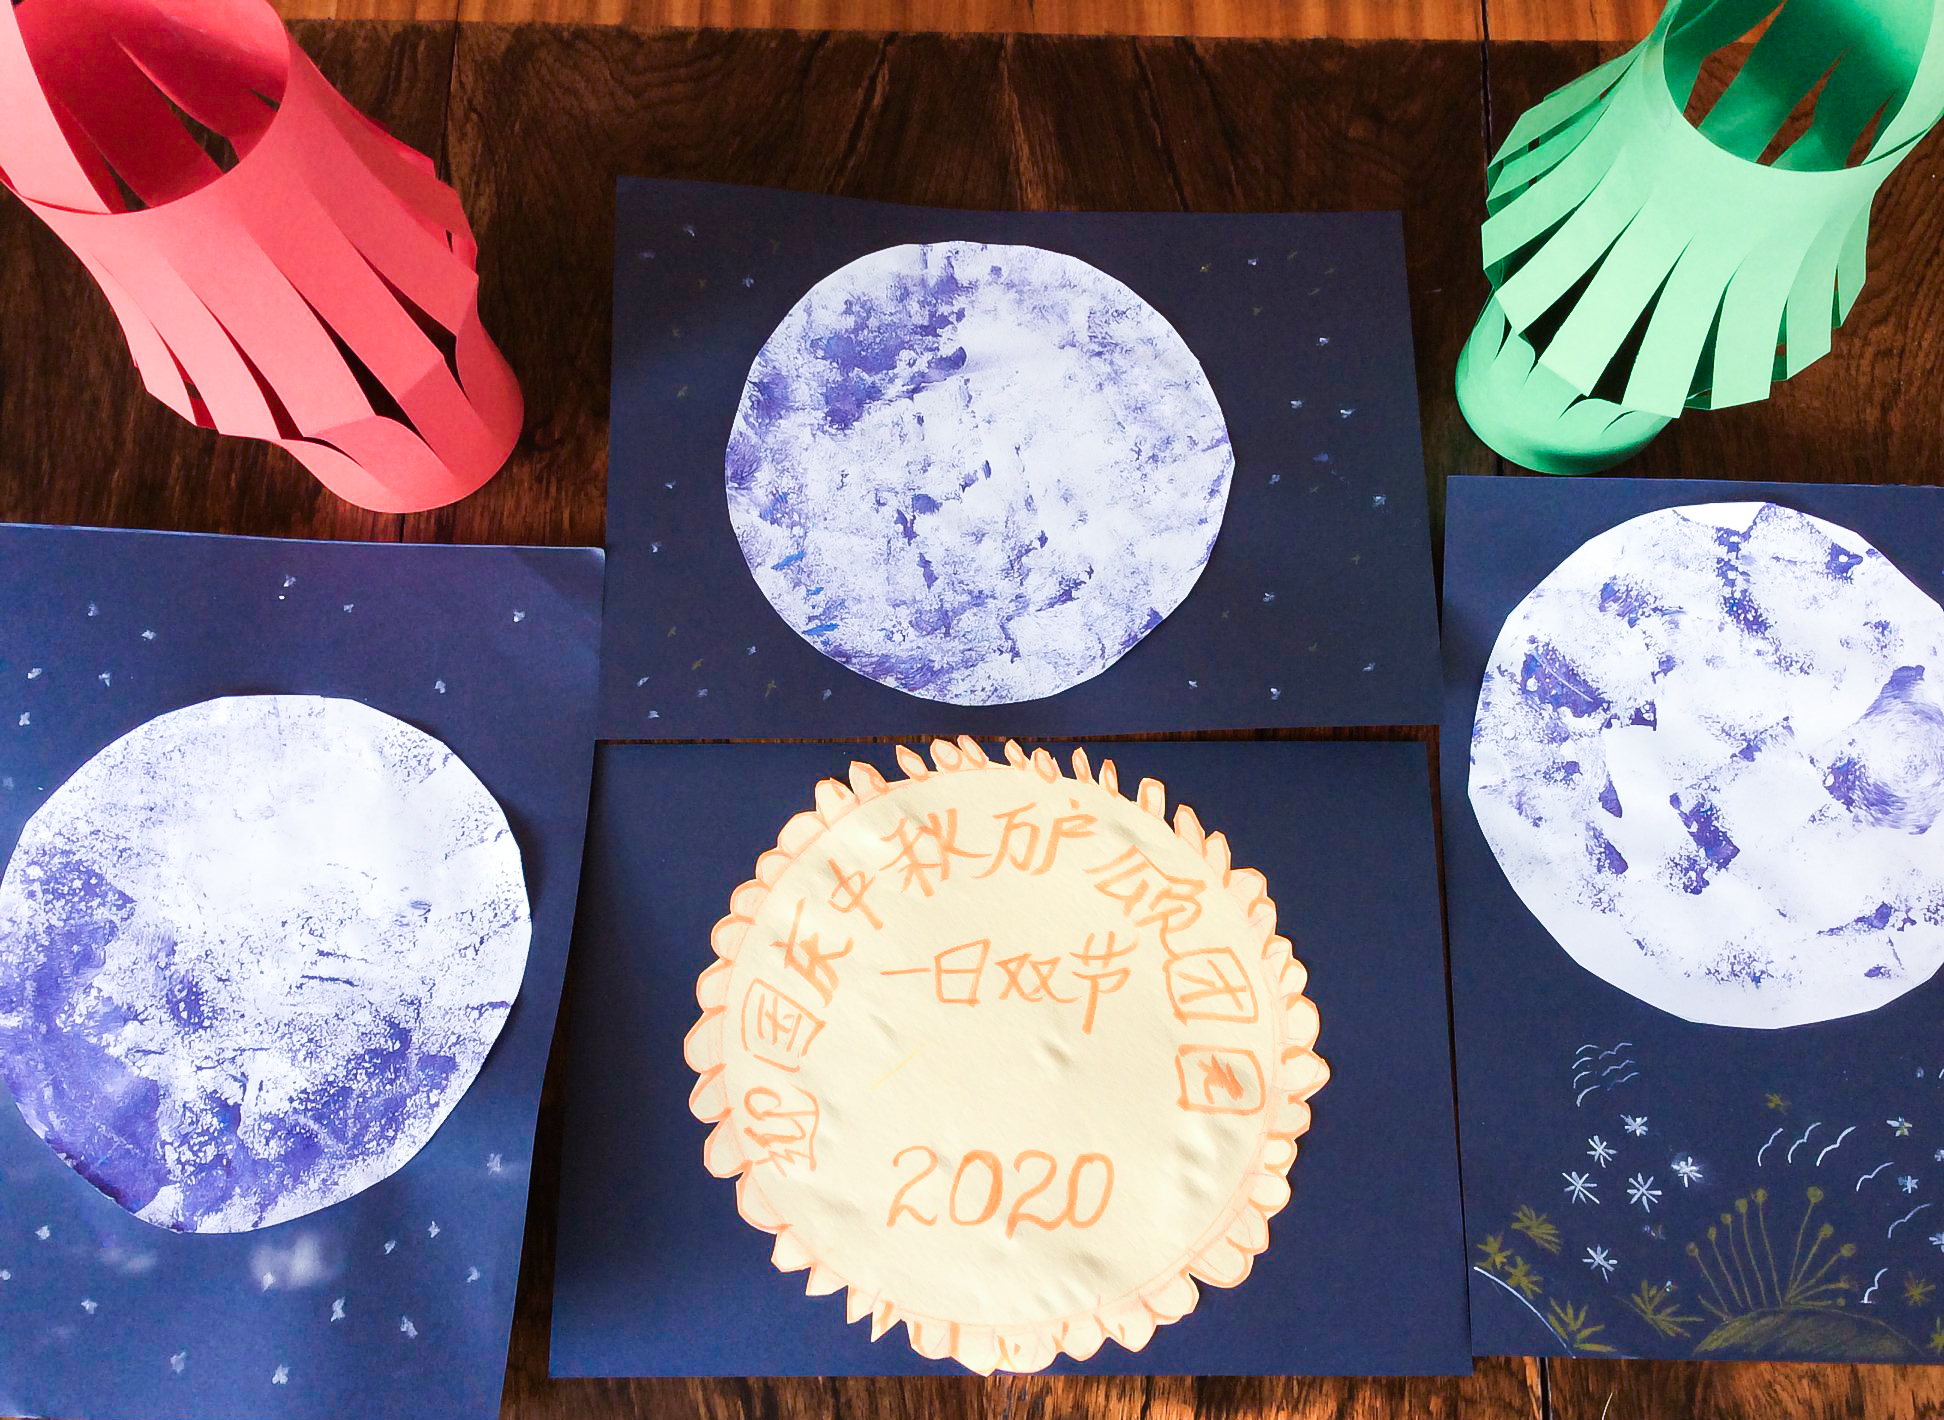 Chinese Moon Festival crafts, including lanterns and moon paintings